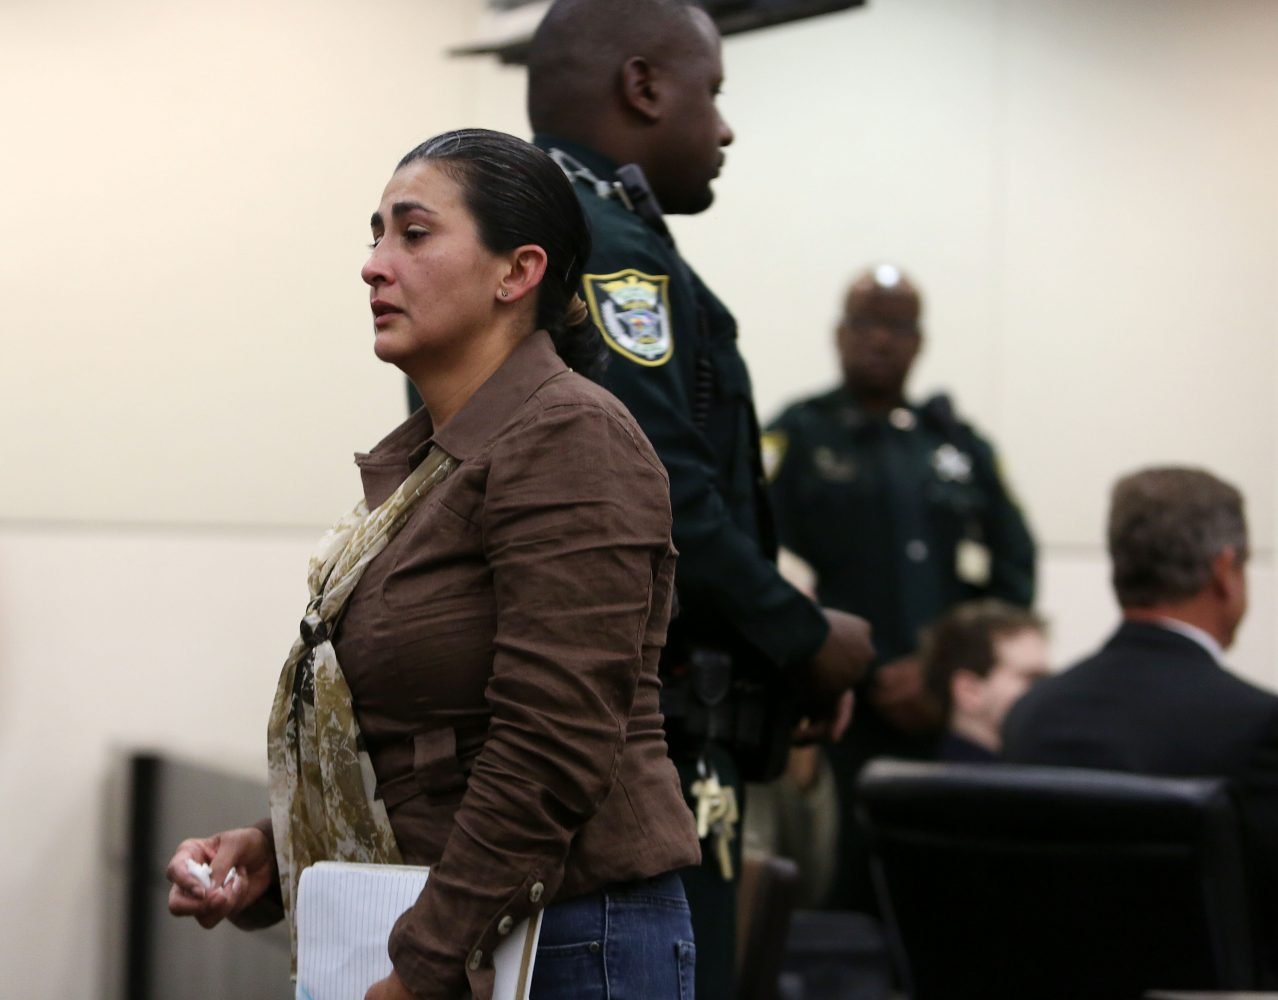 Claudia Aguilar, the mother of Christian Aguilar, walks back to the gallery after speaking to Circuit Court Judge James Colaw before Pedro Bravo's sentencing for the first degree murder of her son Christian in courtroom 1B of the Alachua County Criminal Justice Center Friday, August 15, 2014.  (Doug Finger/The Gainesville Sun/Pool)